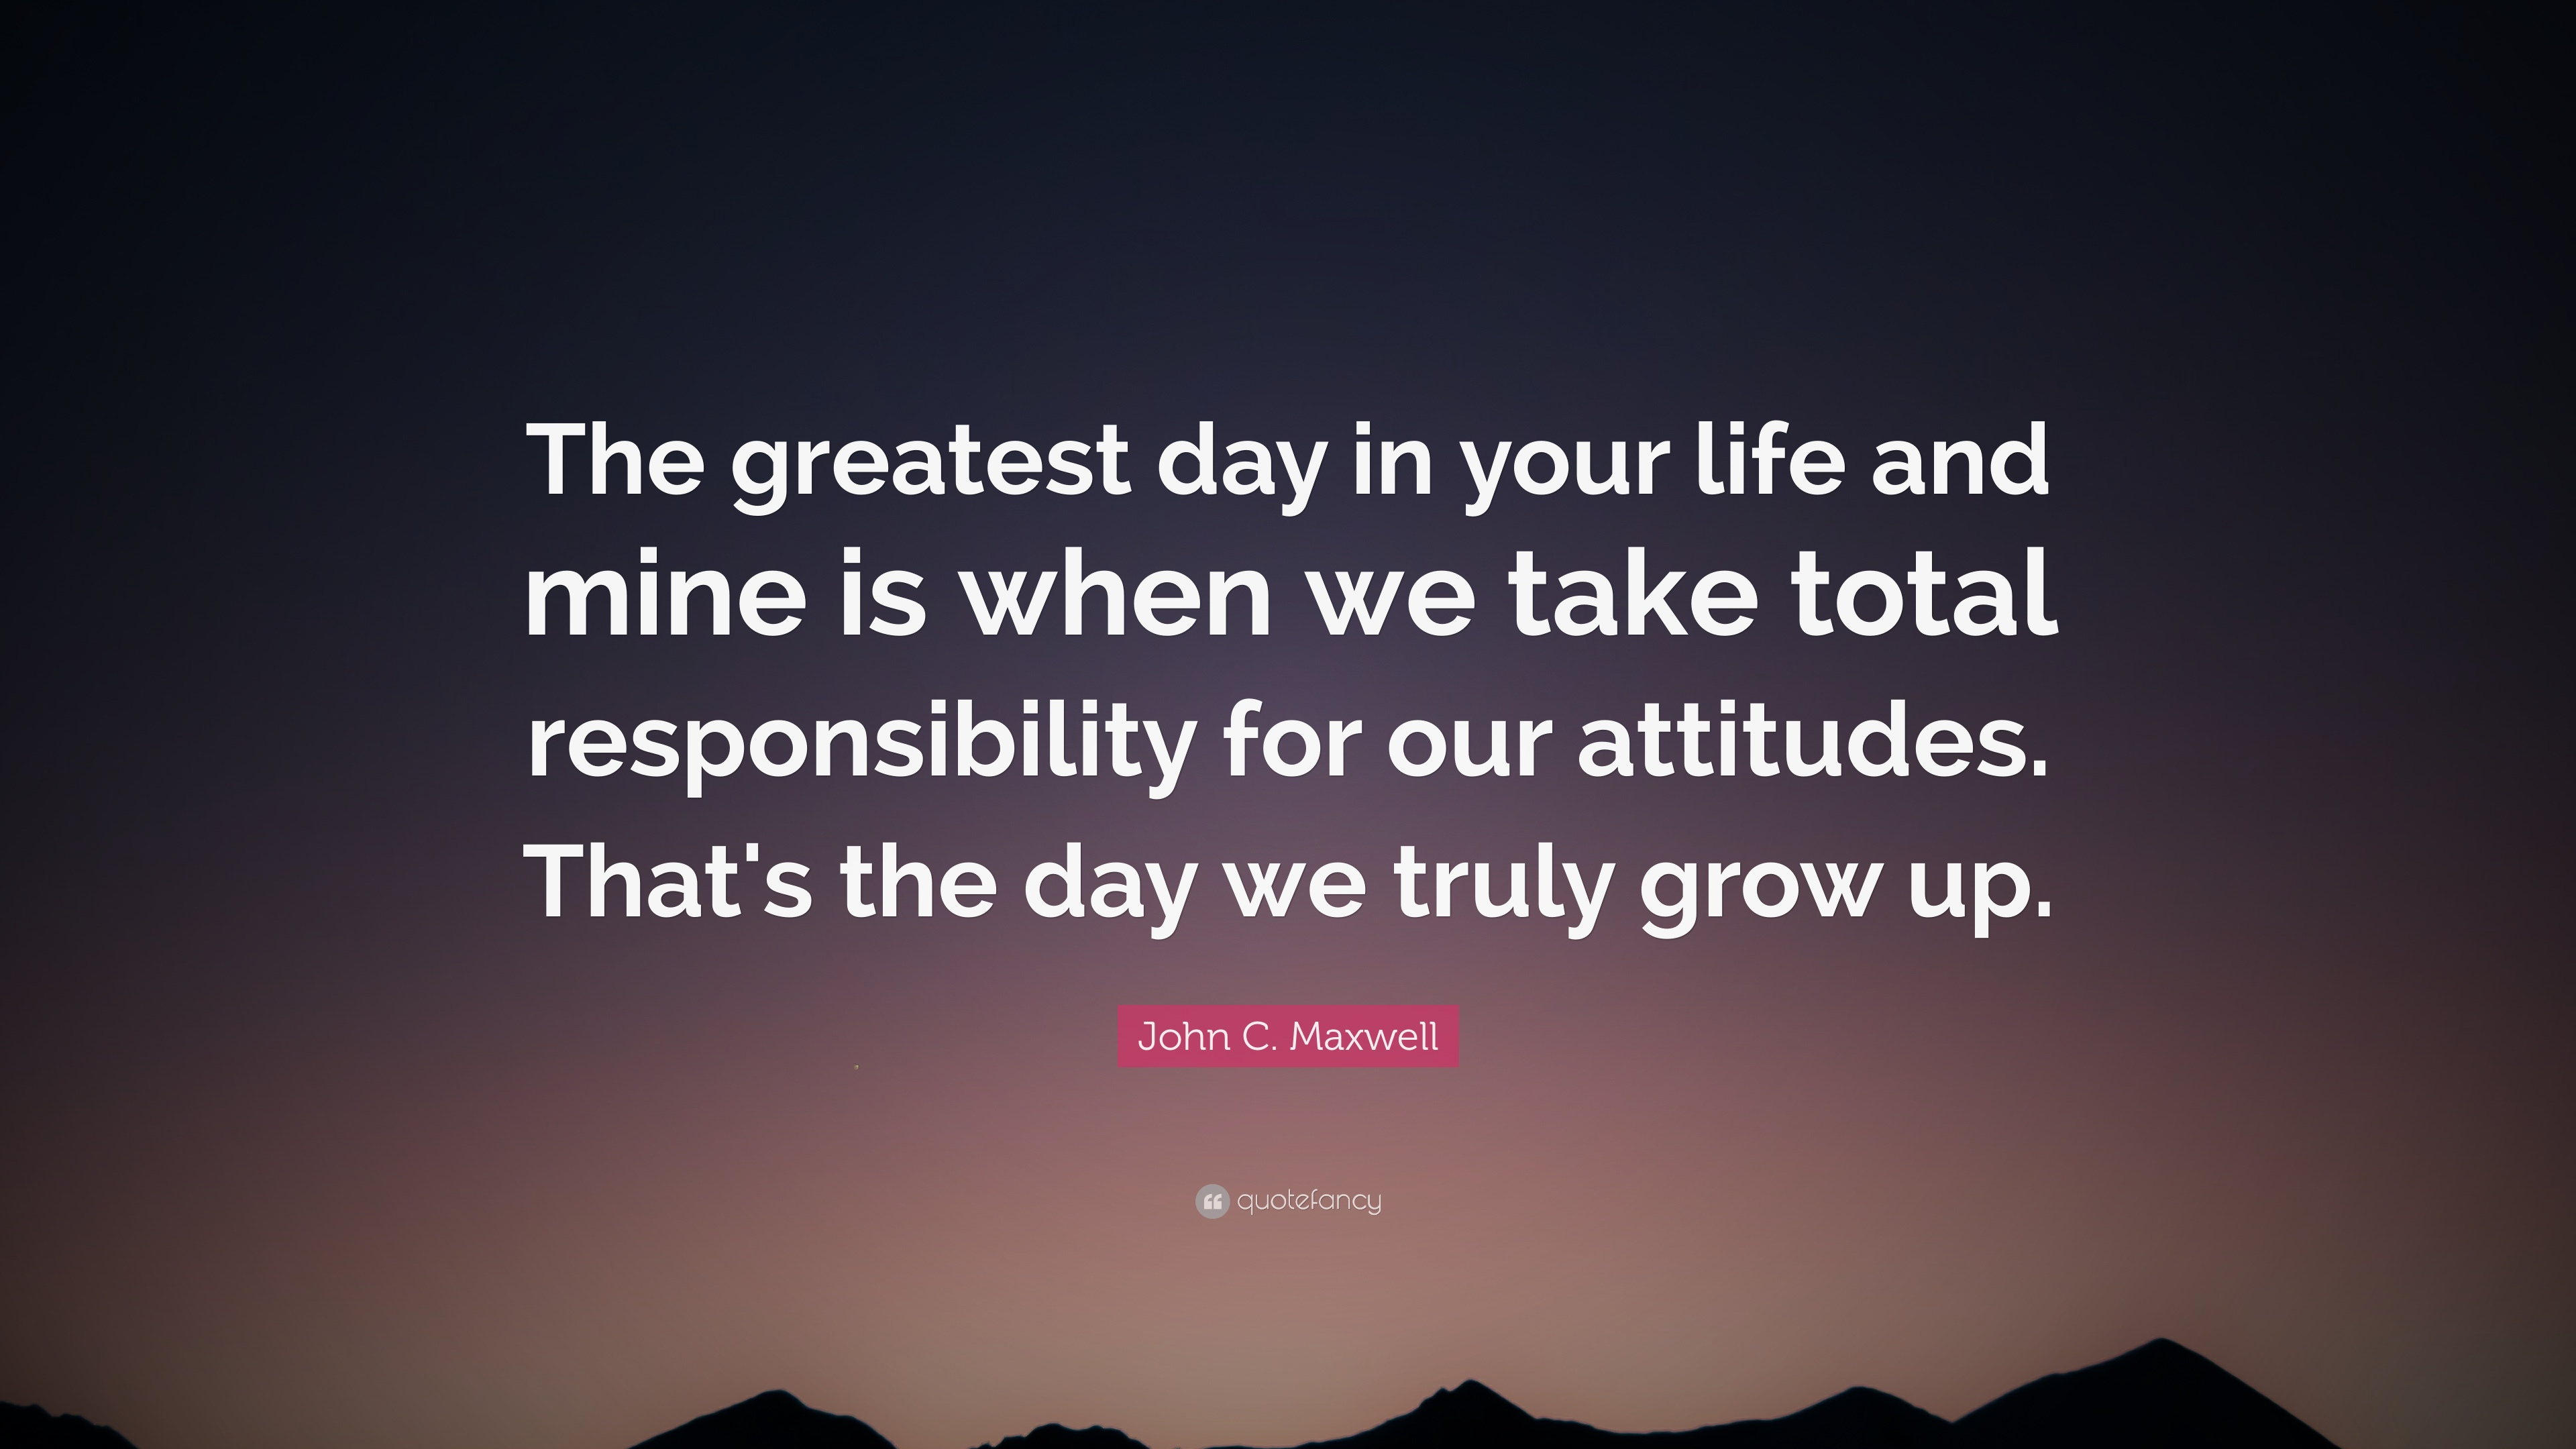 "John C. Maxwell Quote: ""The greatest day in your life and mine is when we take total responsibility for our attitudes. That's the day we truly g..."" (14 wallpapers) - Quotefancy"